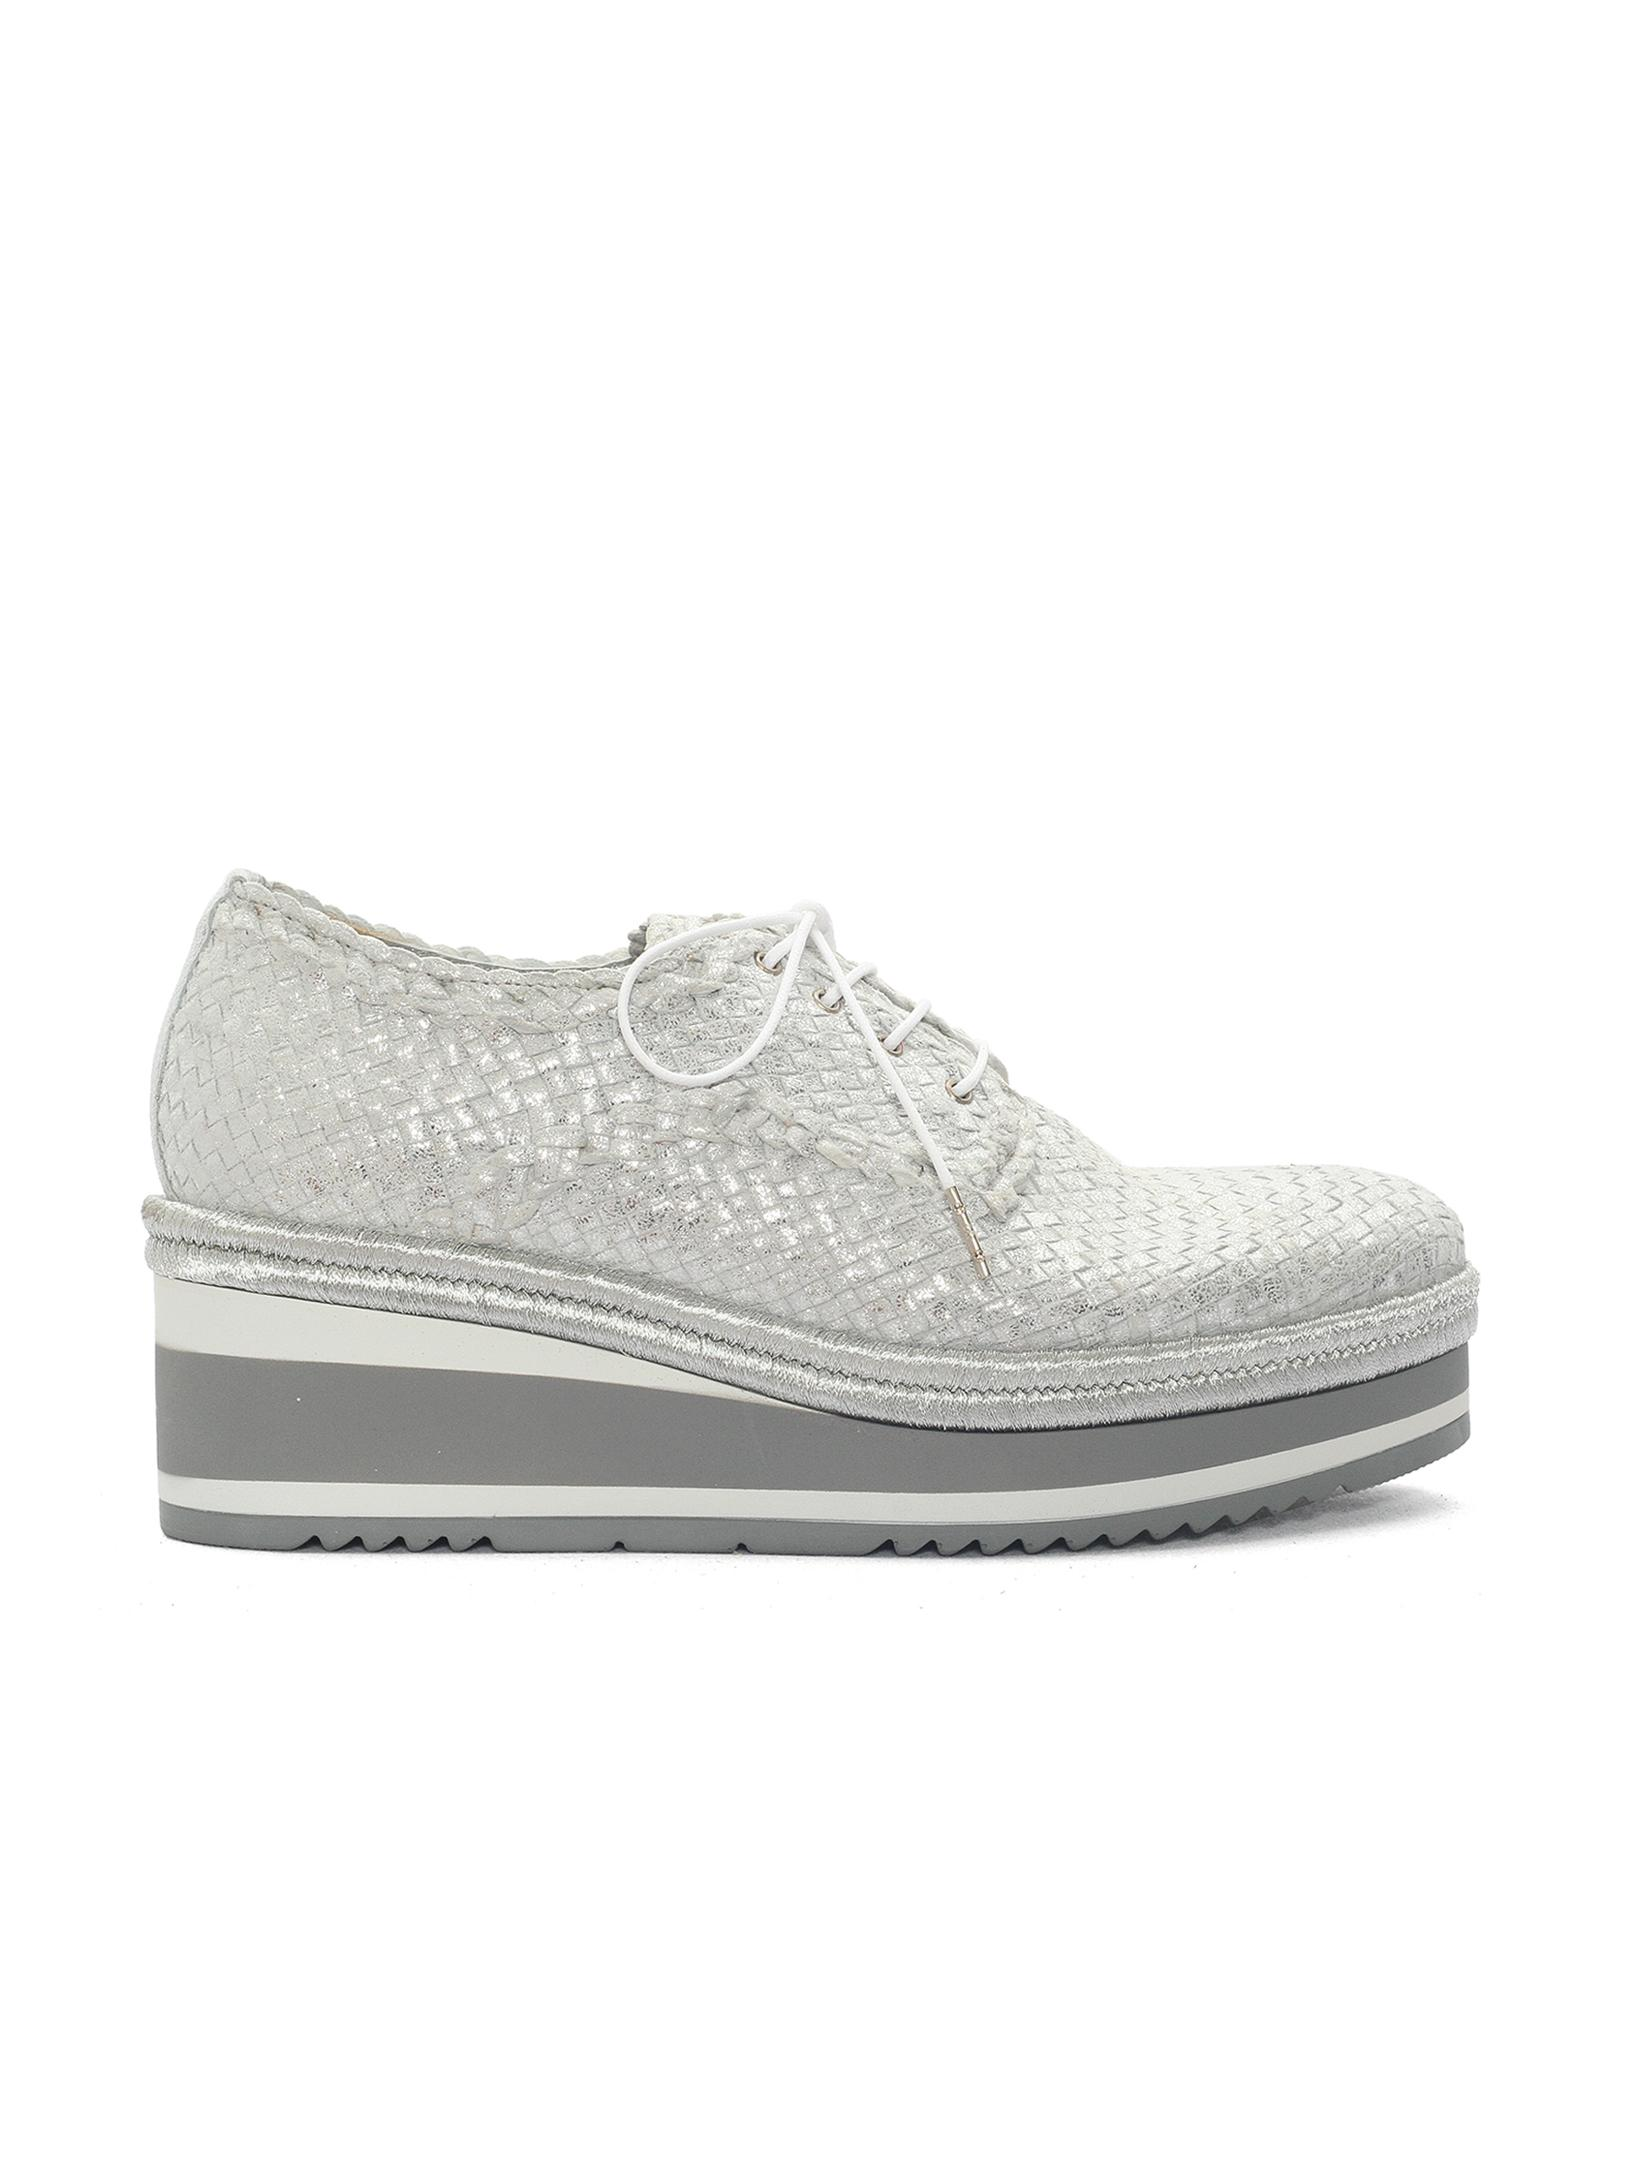 BRAIDED NAPA LEATHER SNEAKER